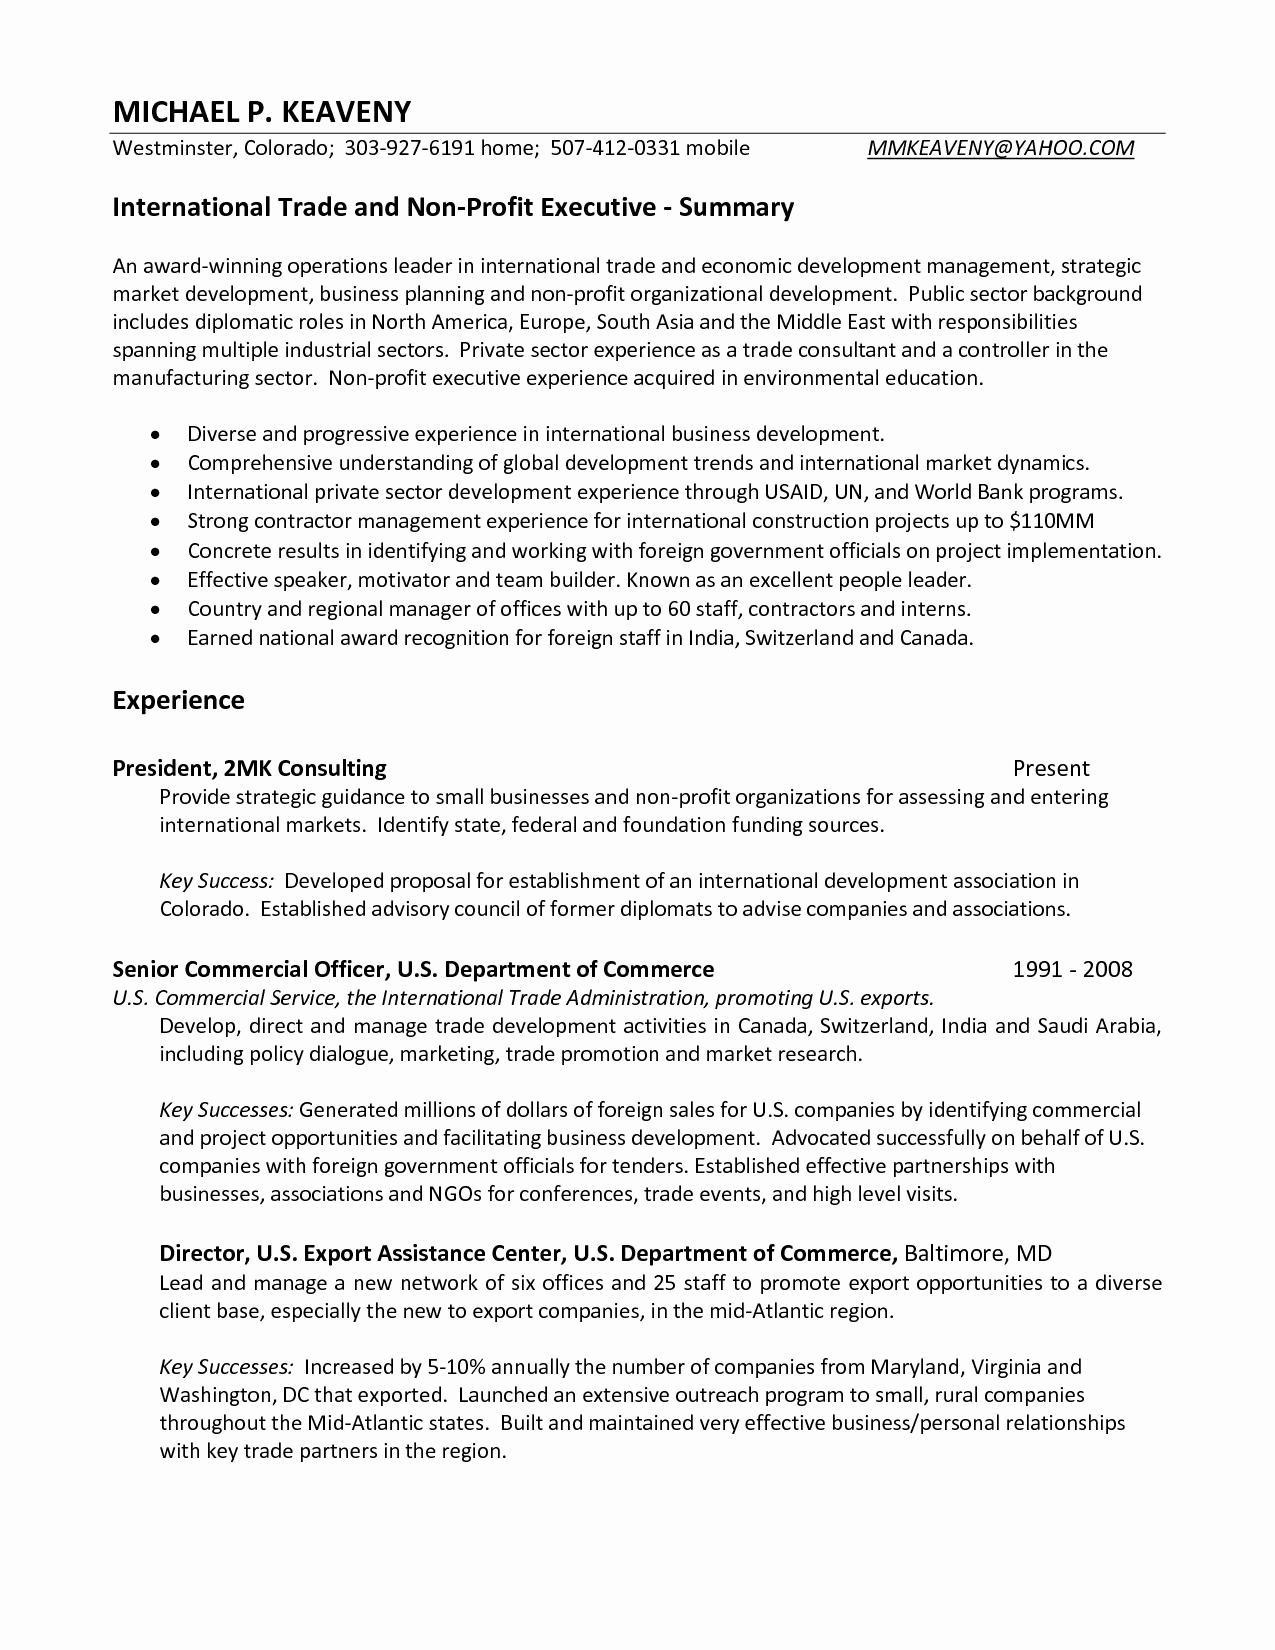 Director Level Resume - Business Resume Examples Fresh Resume or Cv Unique American Resume